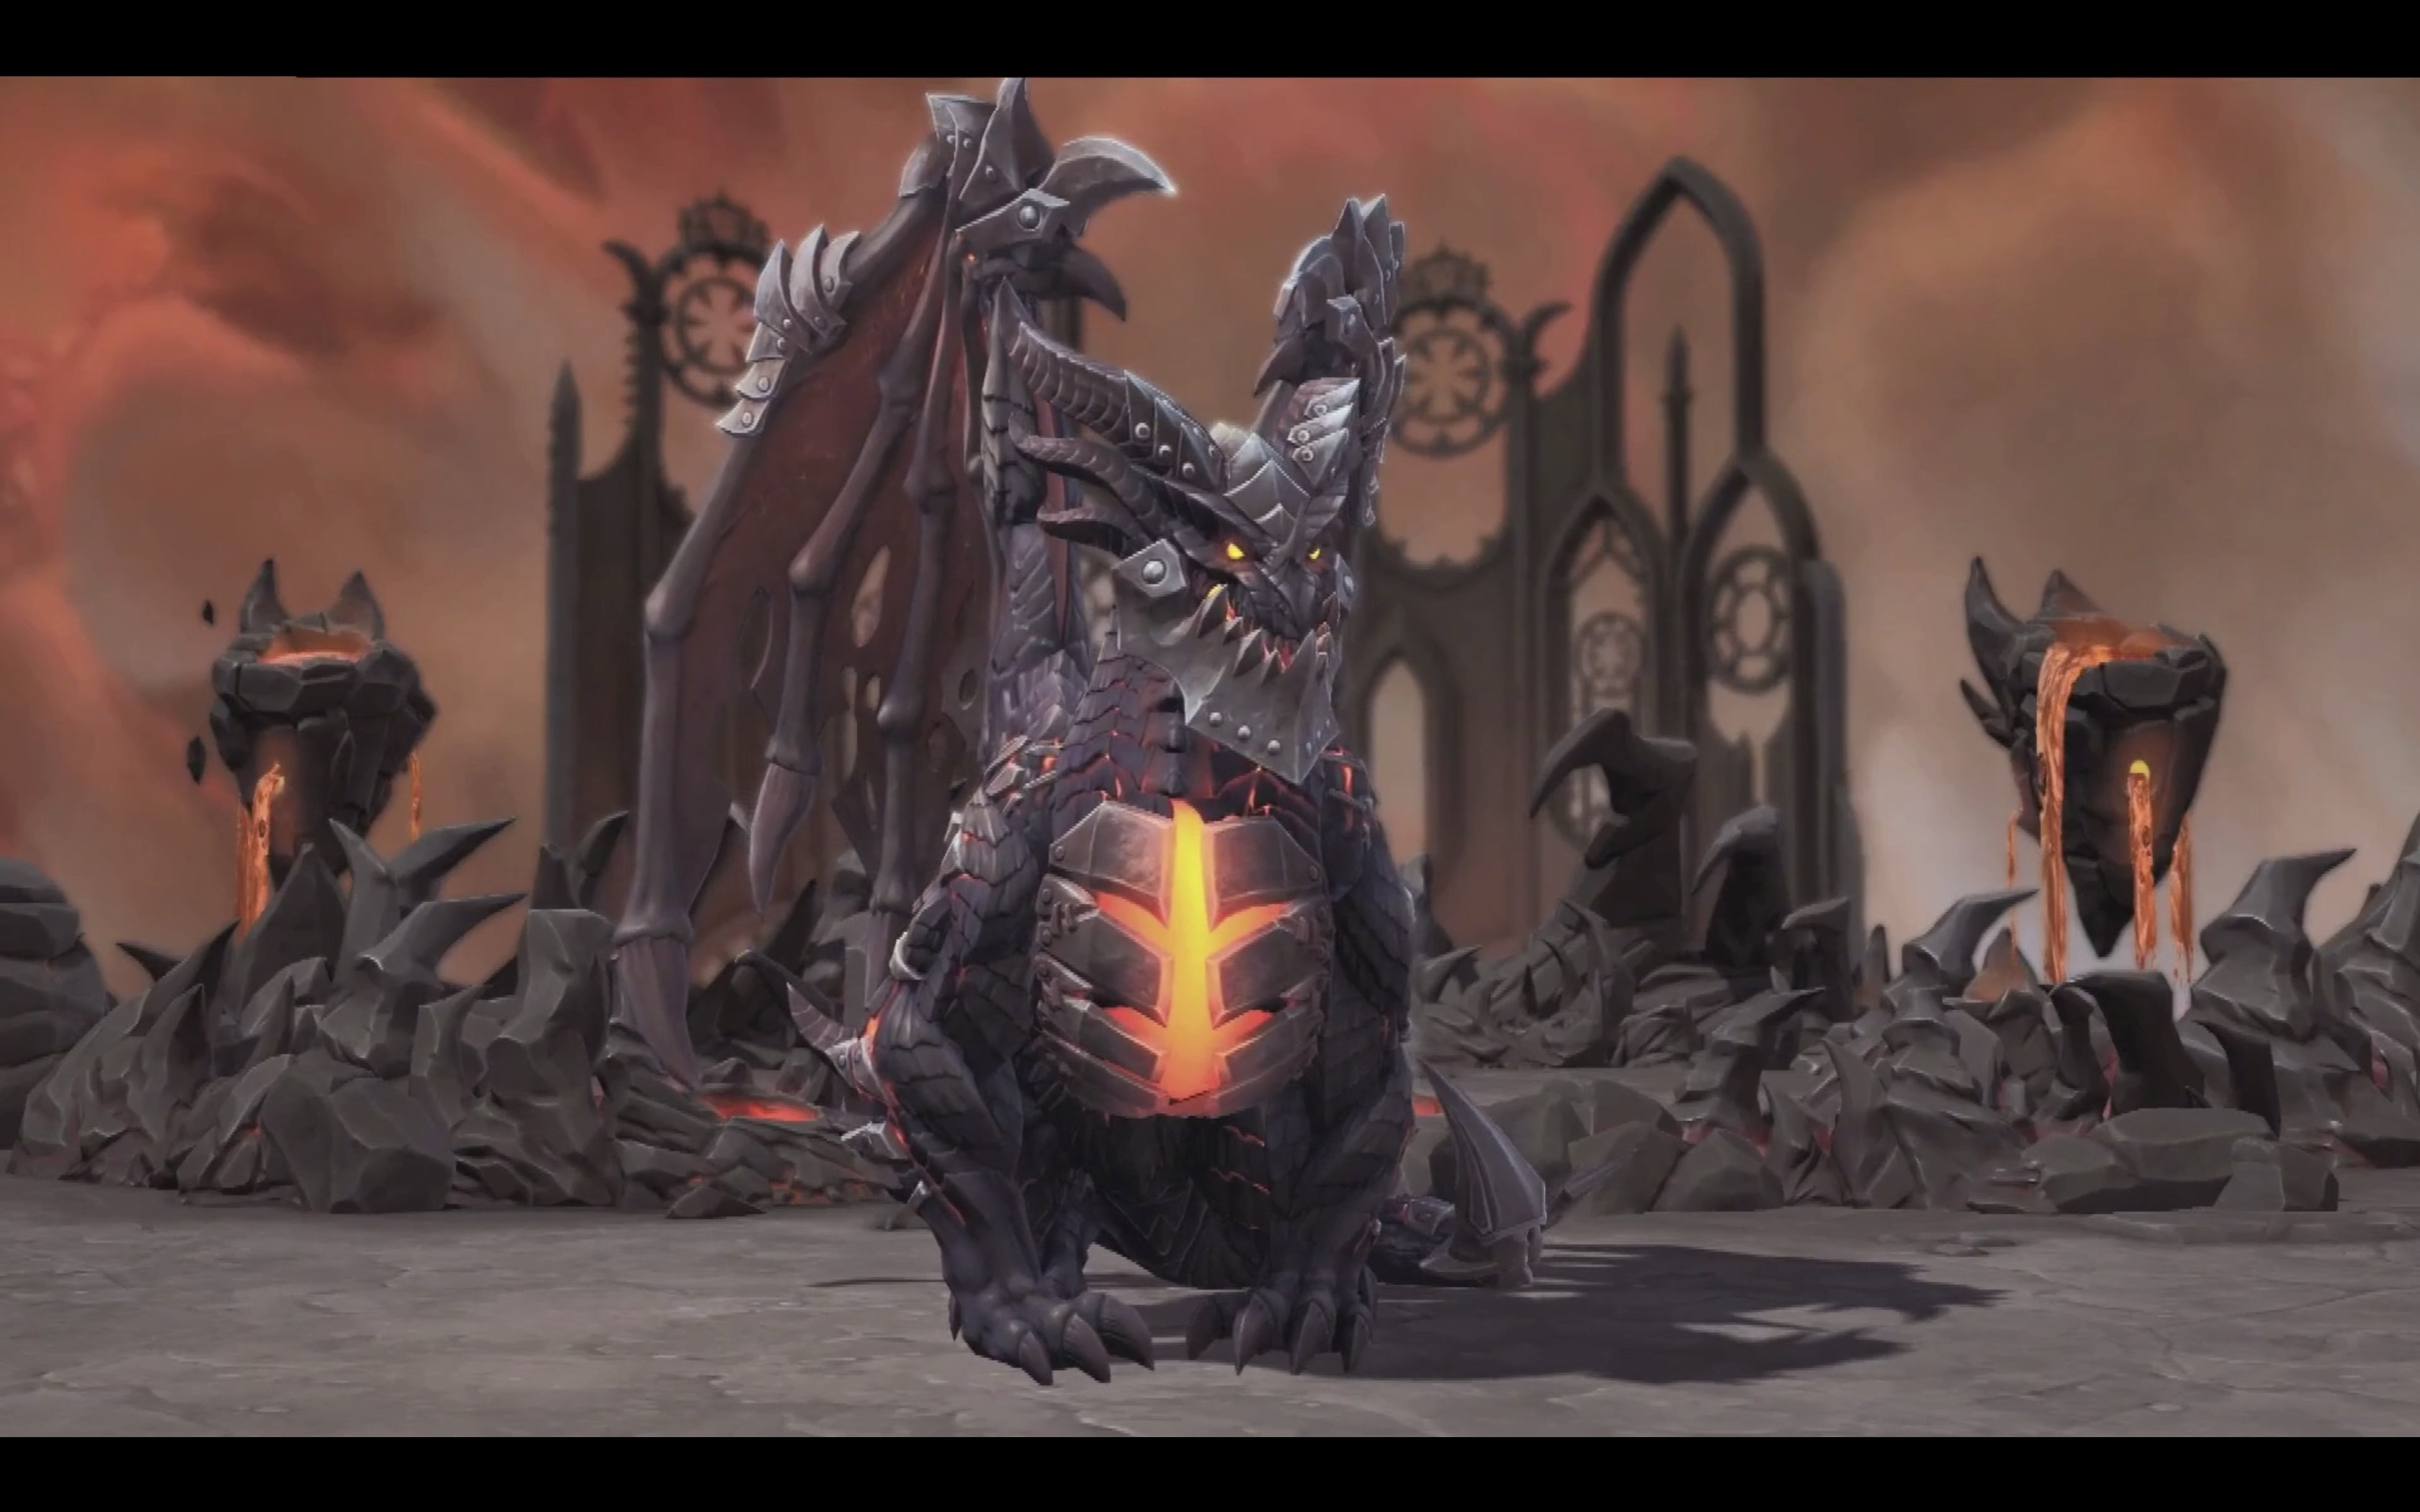 Heroes Of The Storm At Blizzcon 2019 Deathwing Toys Ii Mephisto S Revenge Wowhead News Make sure to check out hotslogs as there are quite a few viable builds currently. heroes of the storm at blizzcon 2019